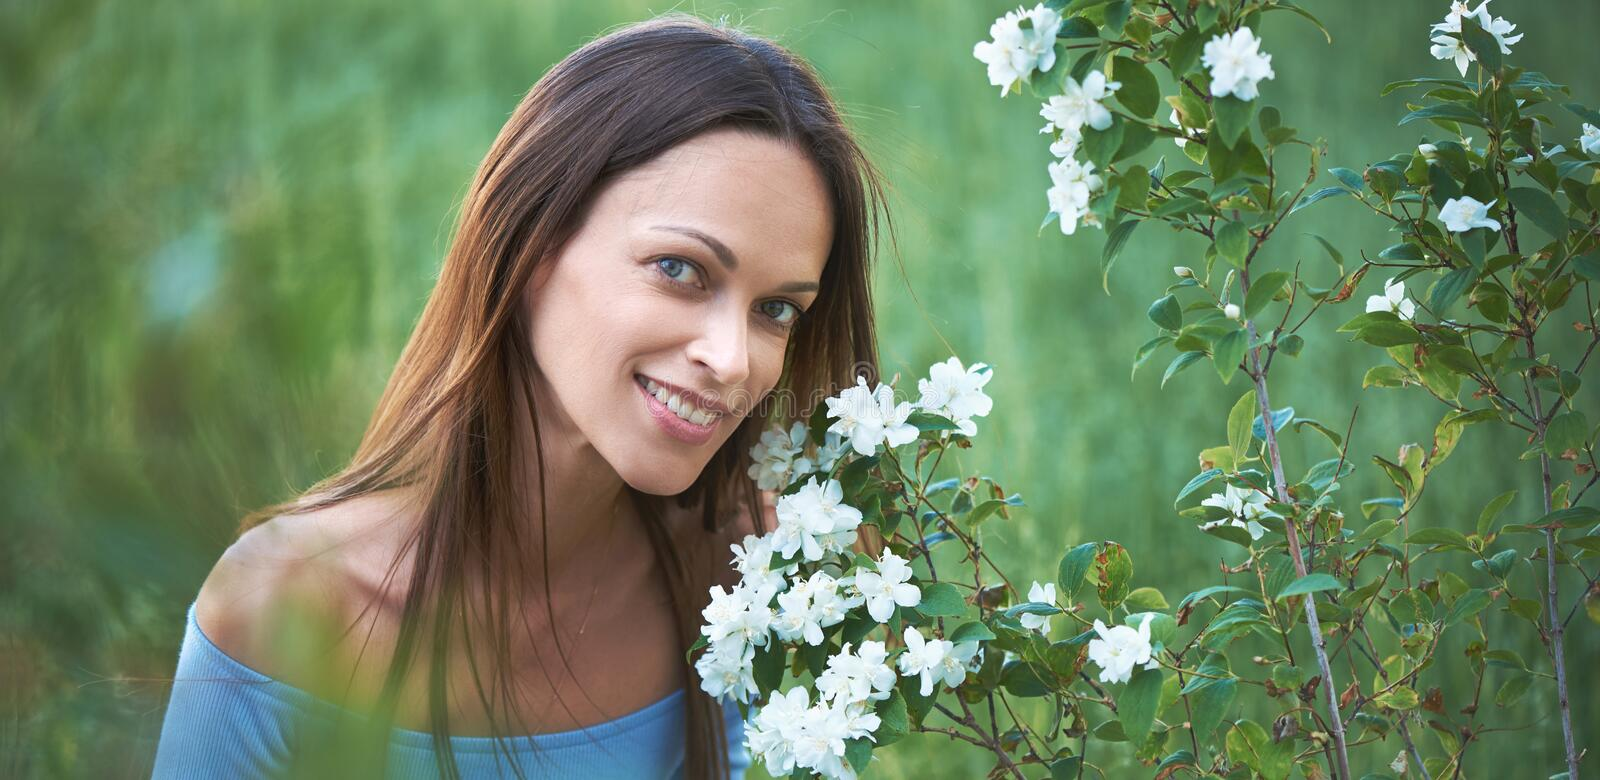 outdoors portrait of a pretty woman royalty free stock photo